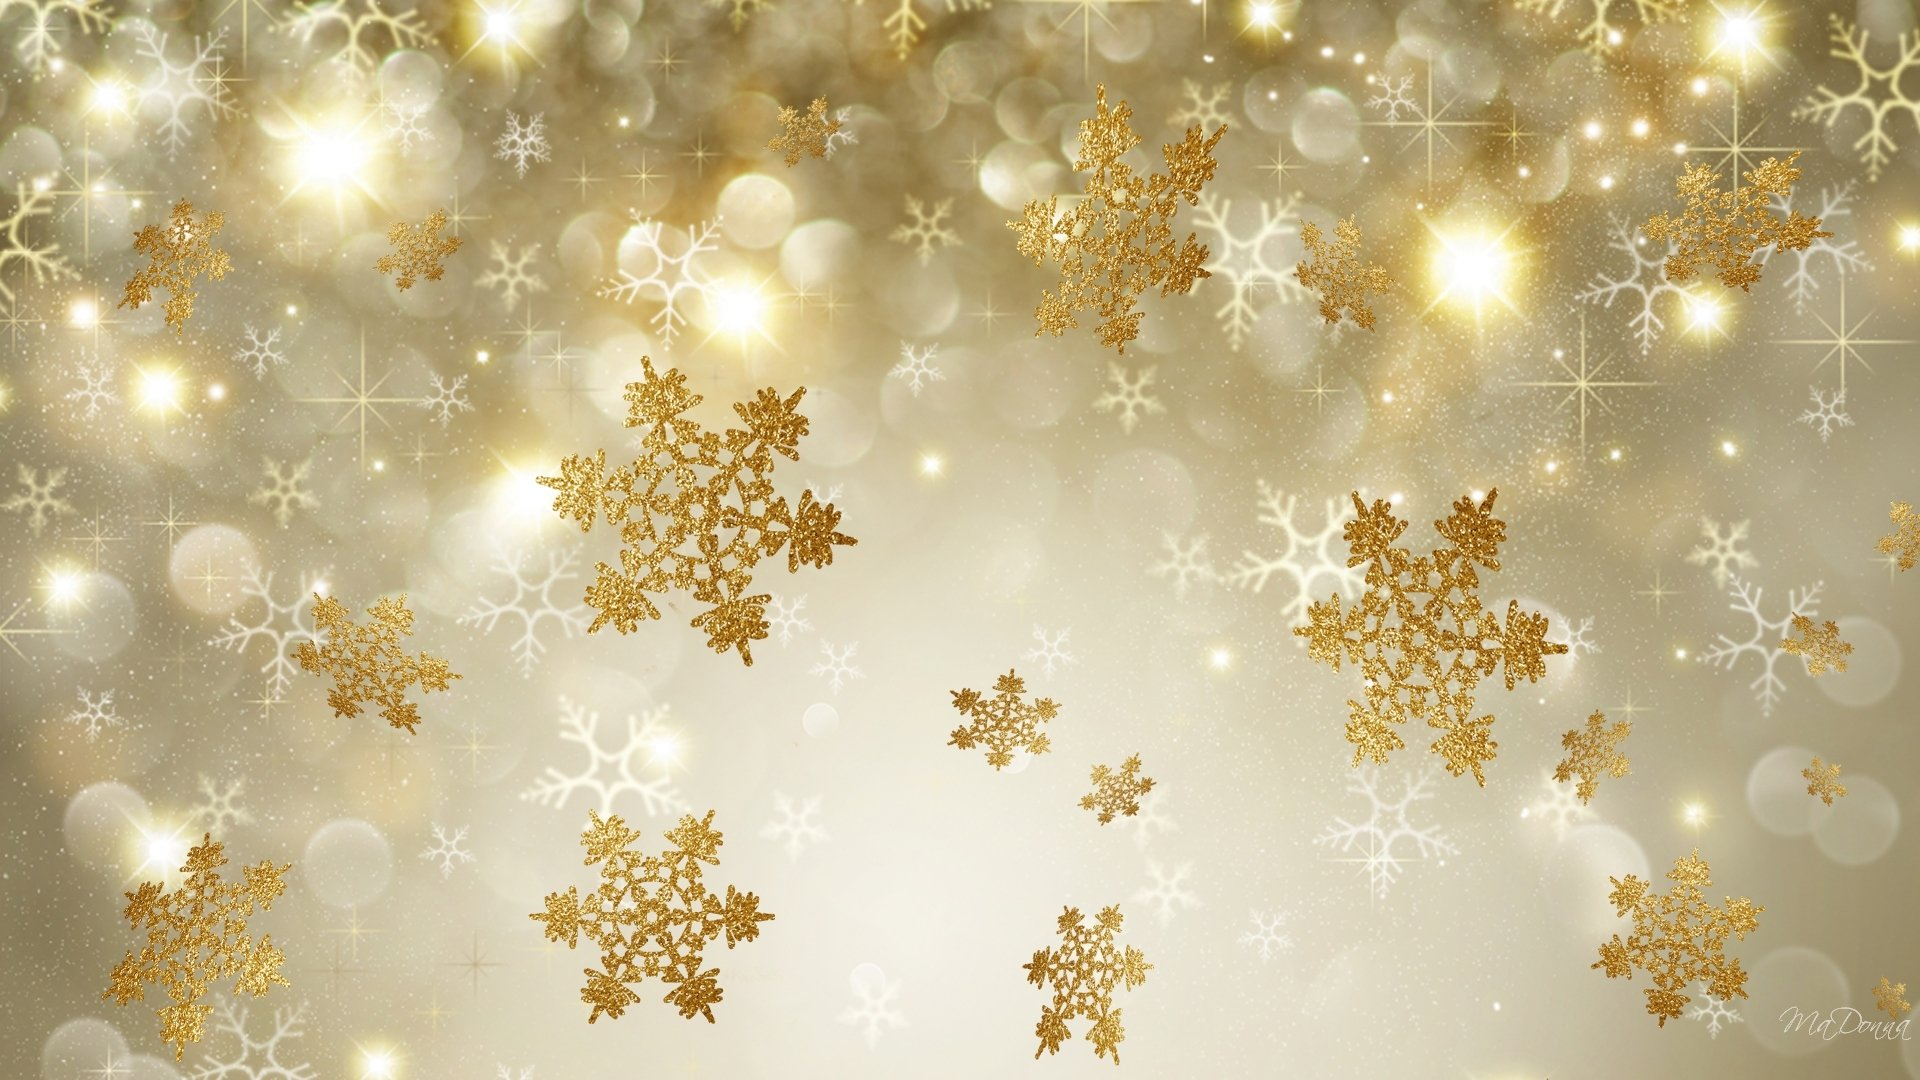 Falling Snow Wallpaper Iphone 5 Golden Snowflakes Hd Wallpaper Background Image